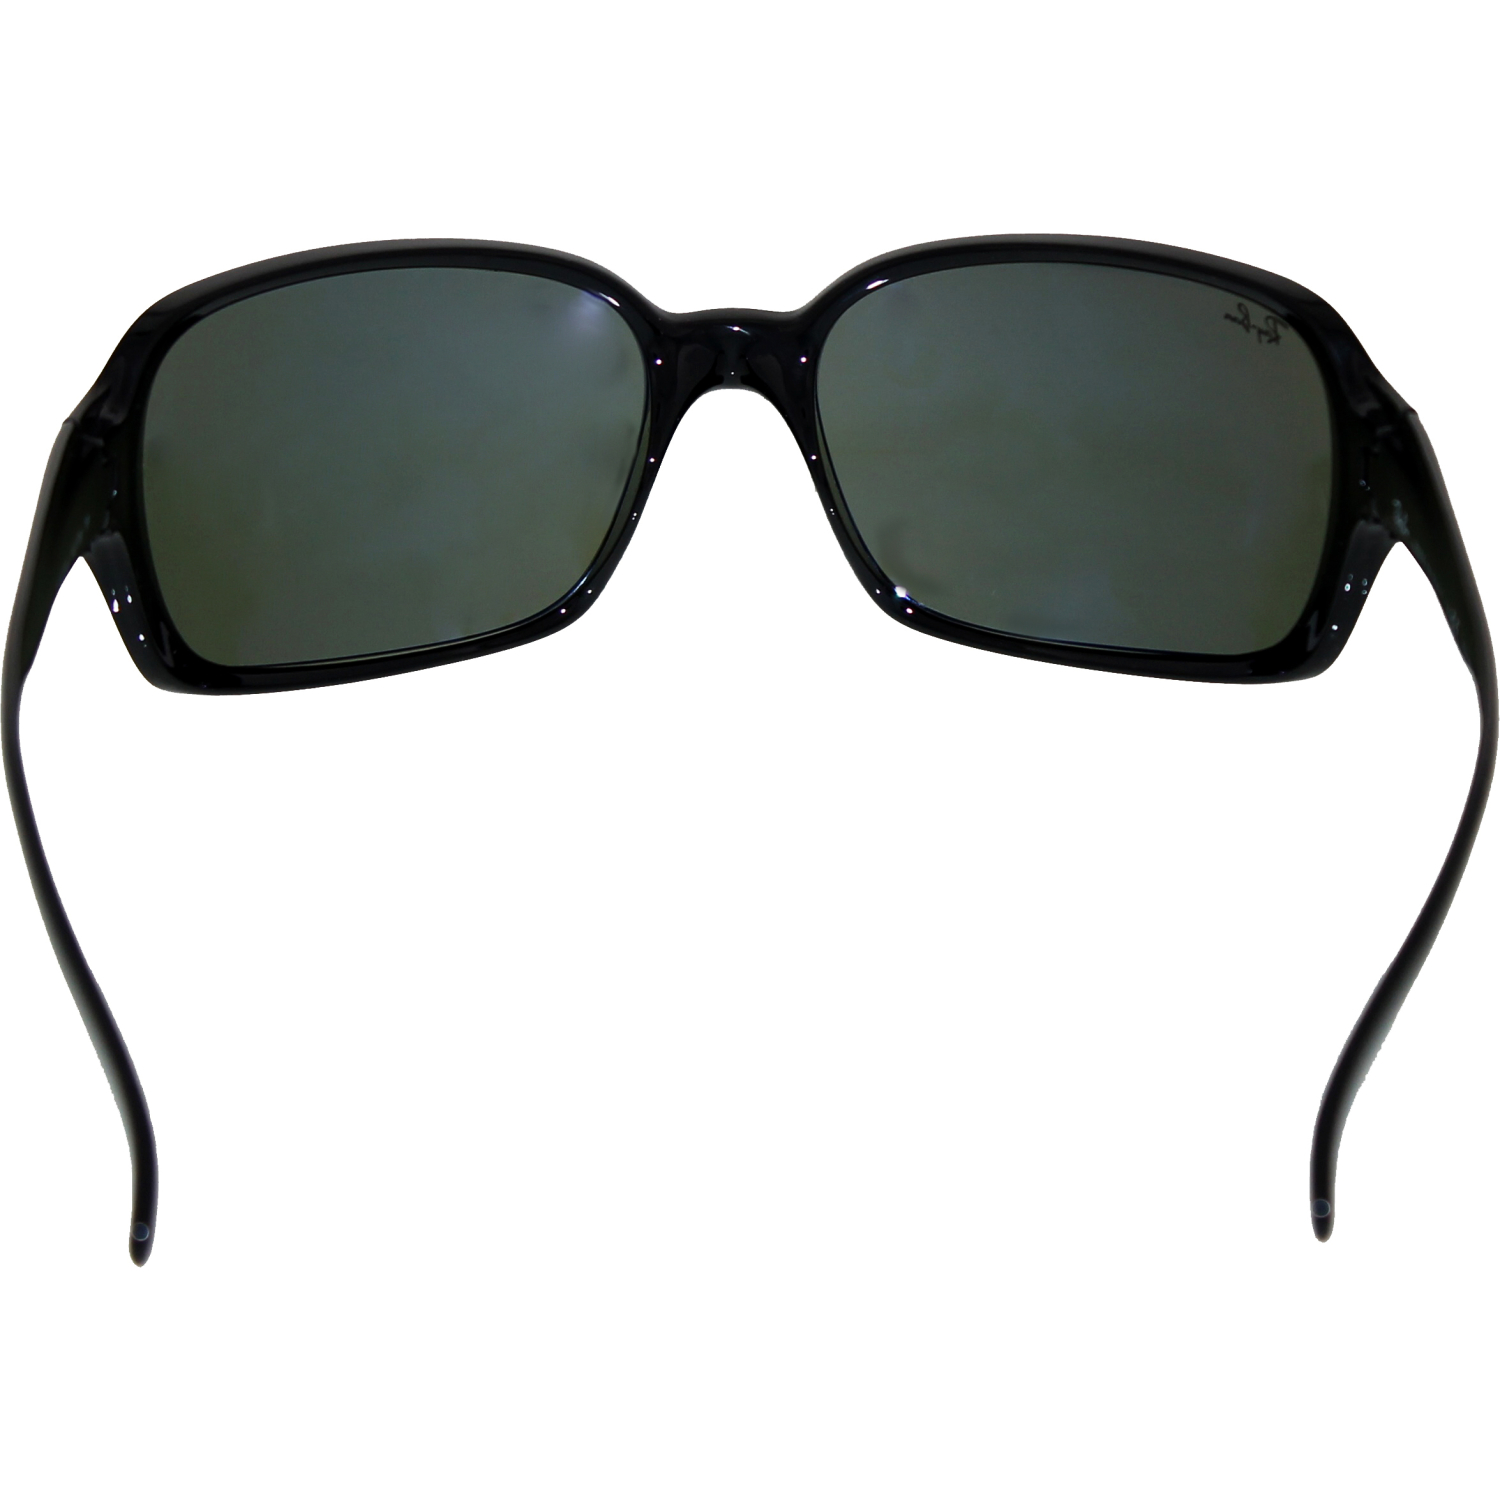 Ray-Ban Women's Highstreet RB4068-601-60 Black Oval Sunglasses